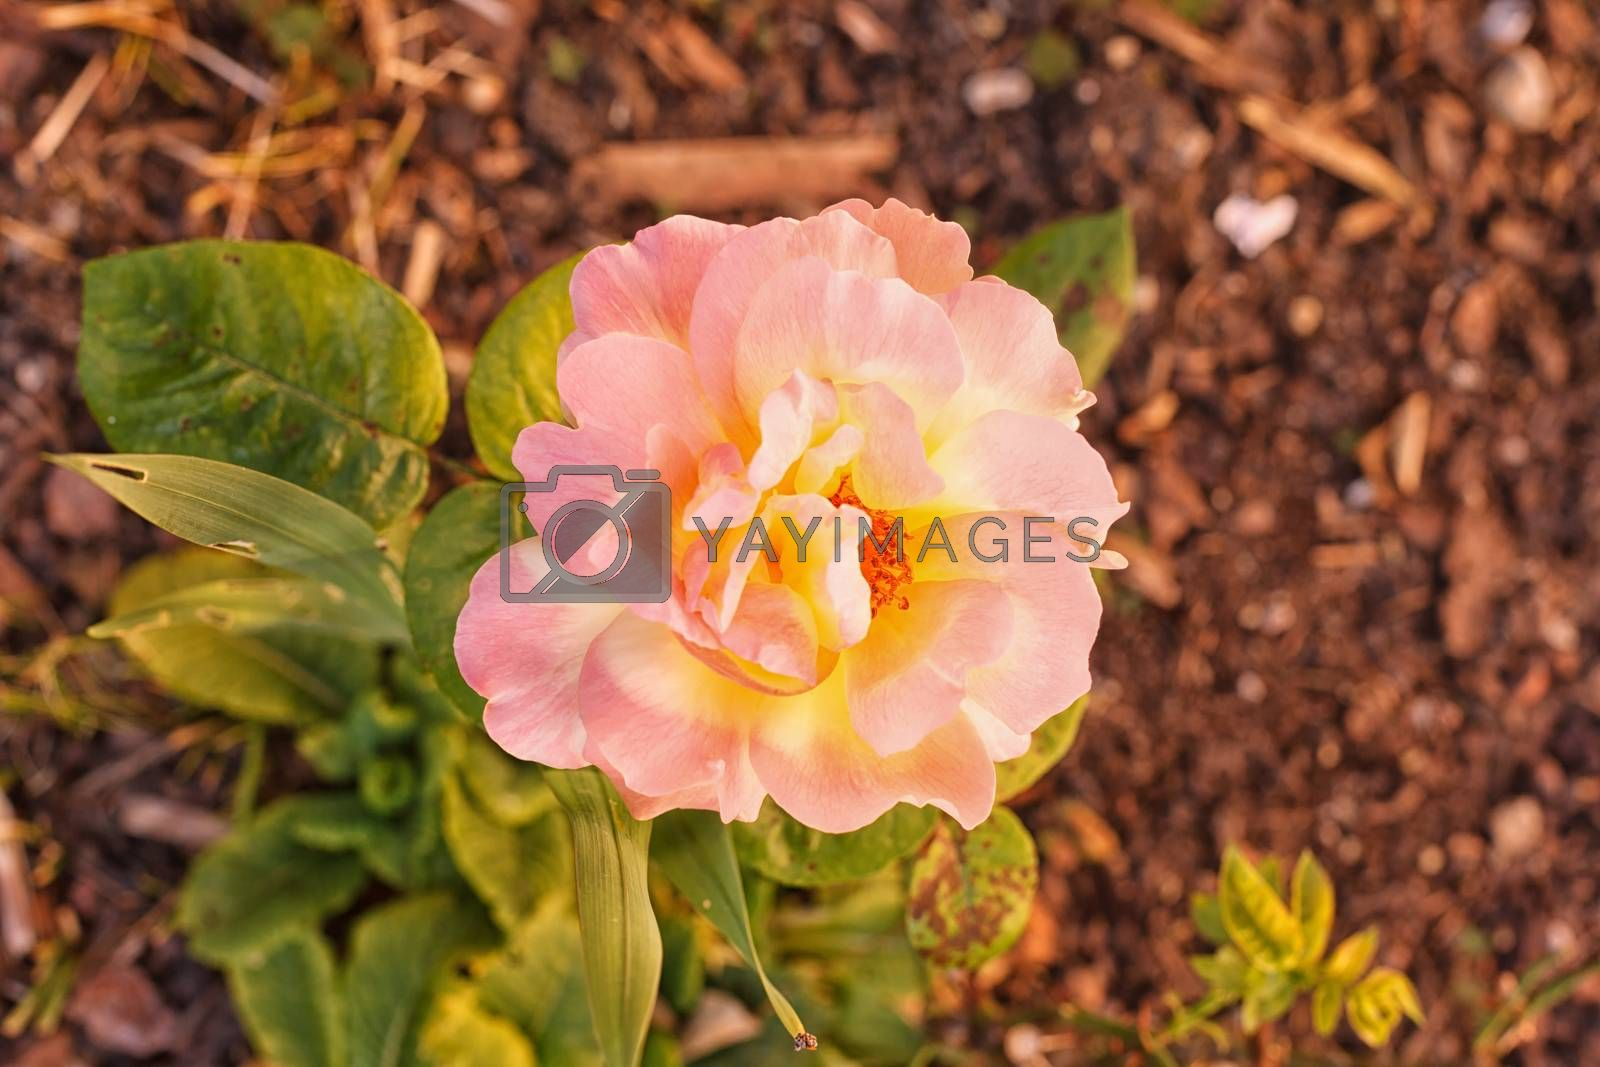 Variegated pretty pink and yellow rose growing on a small bush outdoors in the garden, symbolic of love and romance, overhead view